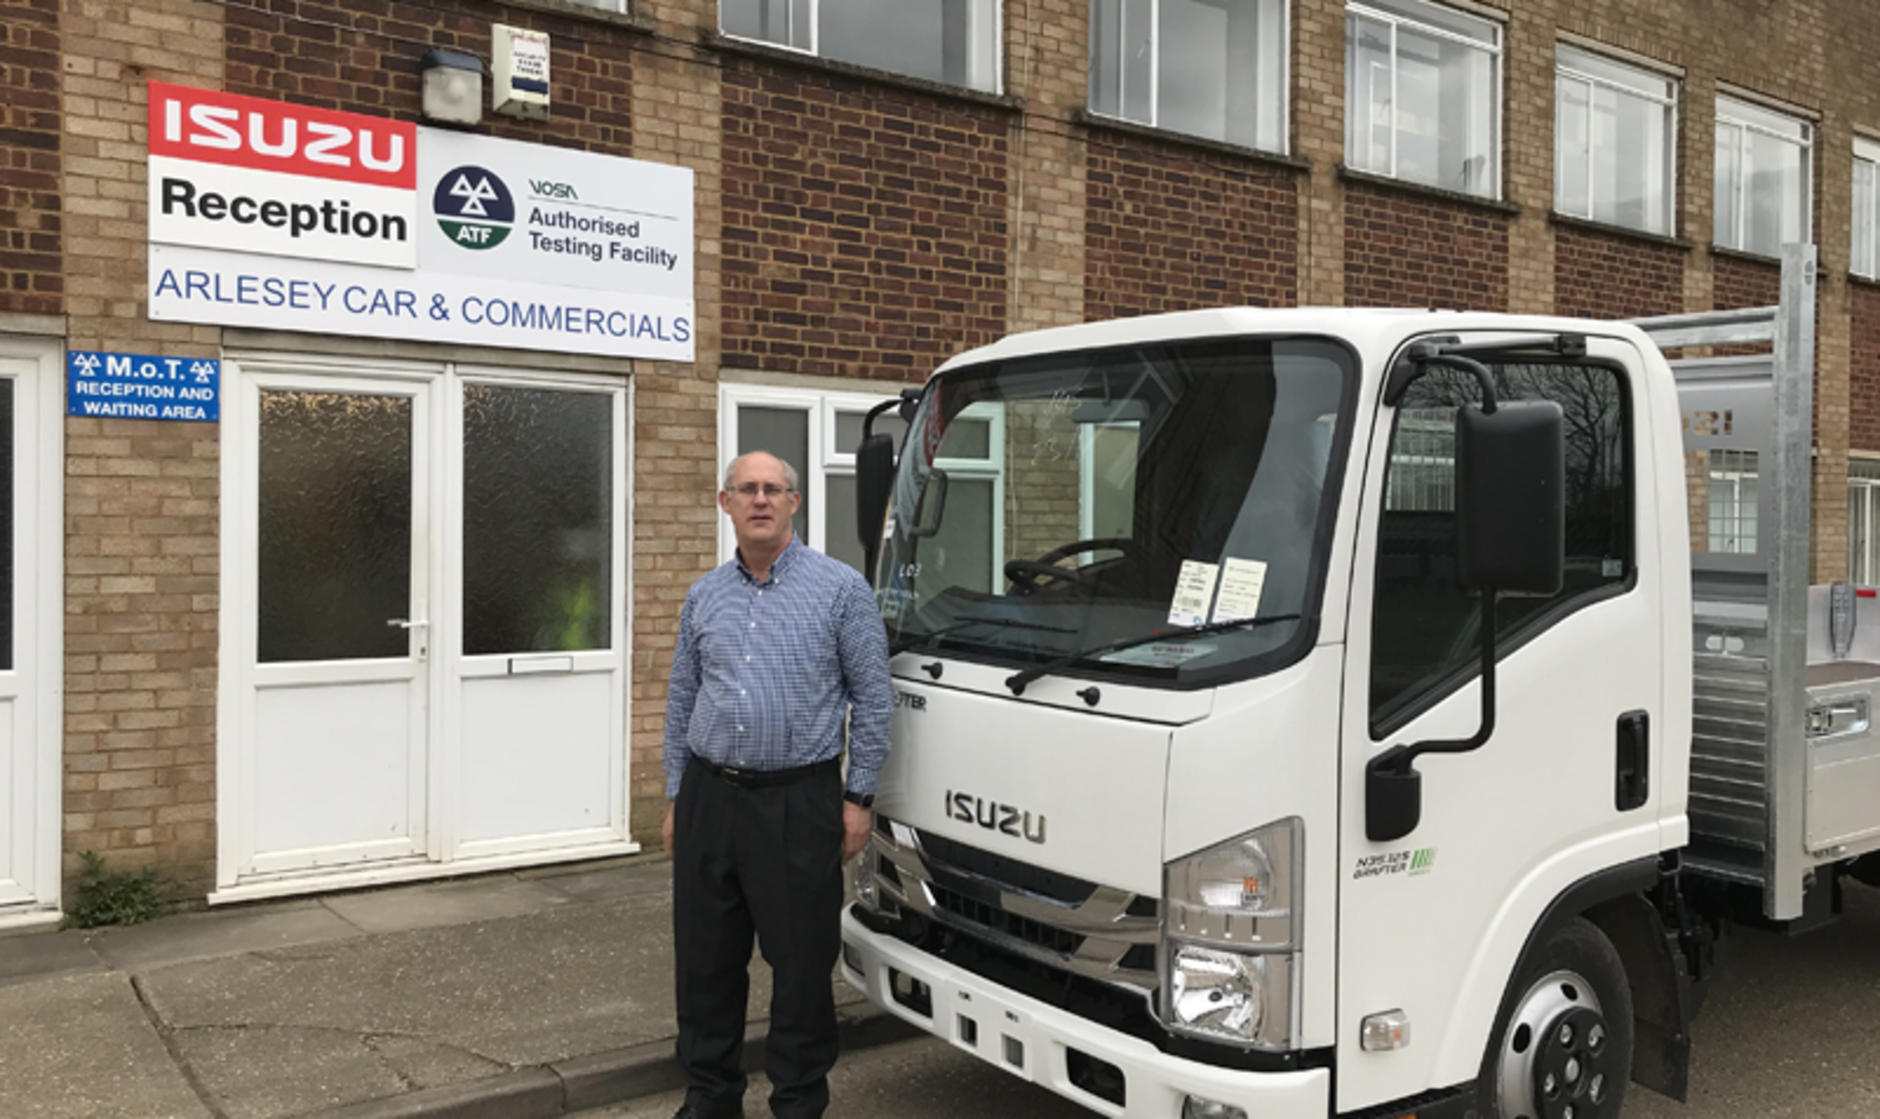 Arlesey Car And Commercials Has Been Appointed A Full Isuzu Truck UK Dealer,  Covering Bedfordshire As Well As Parts Of Buckinghamshire And Hertfordshire.